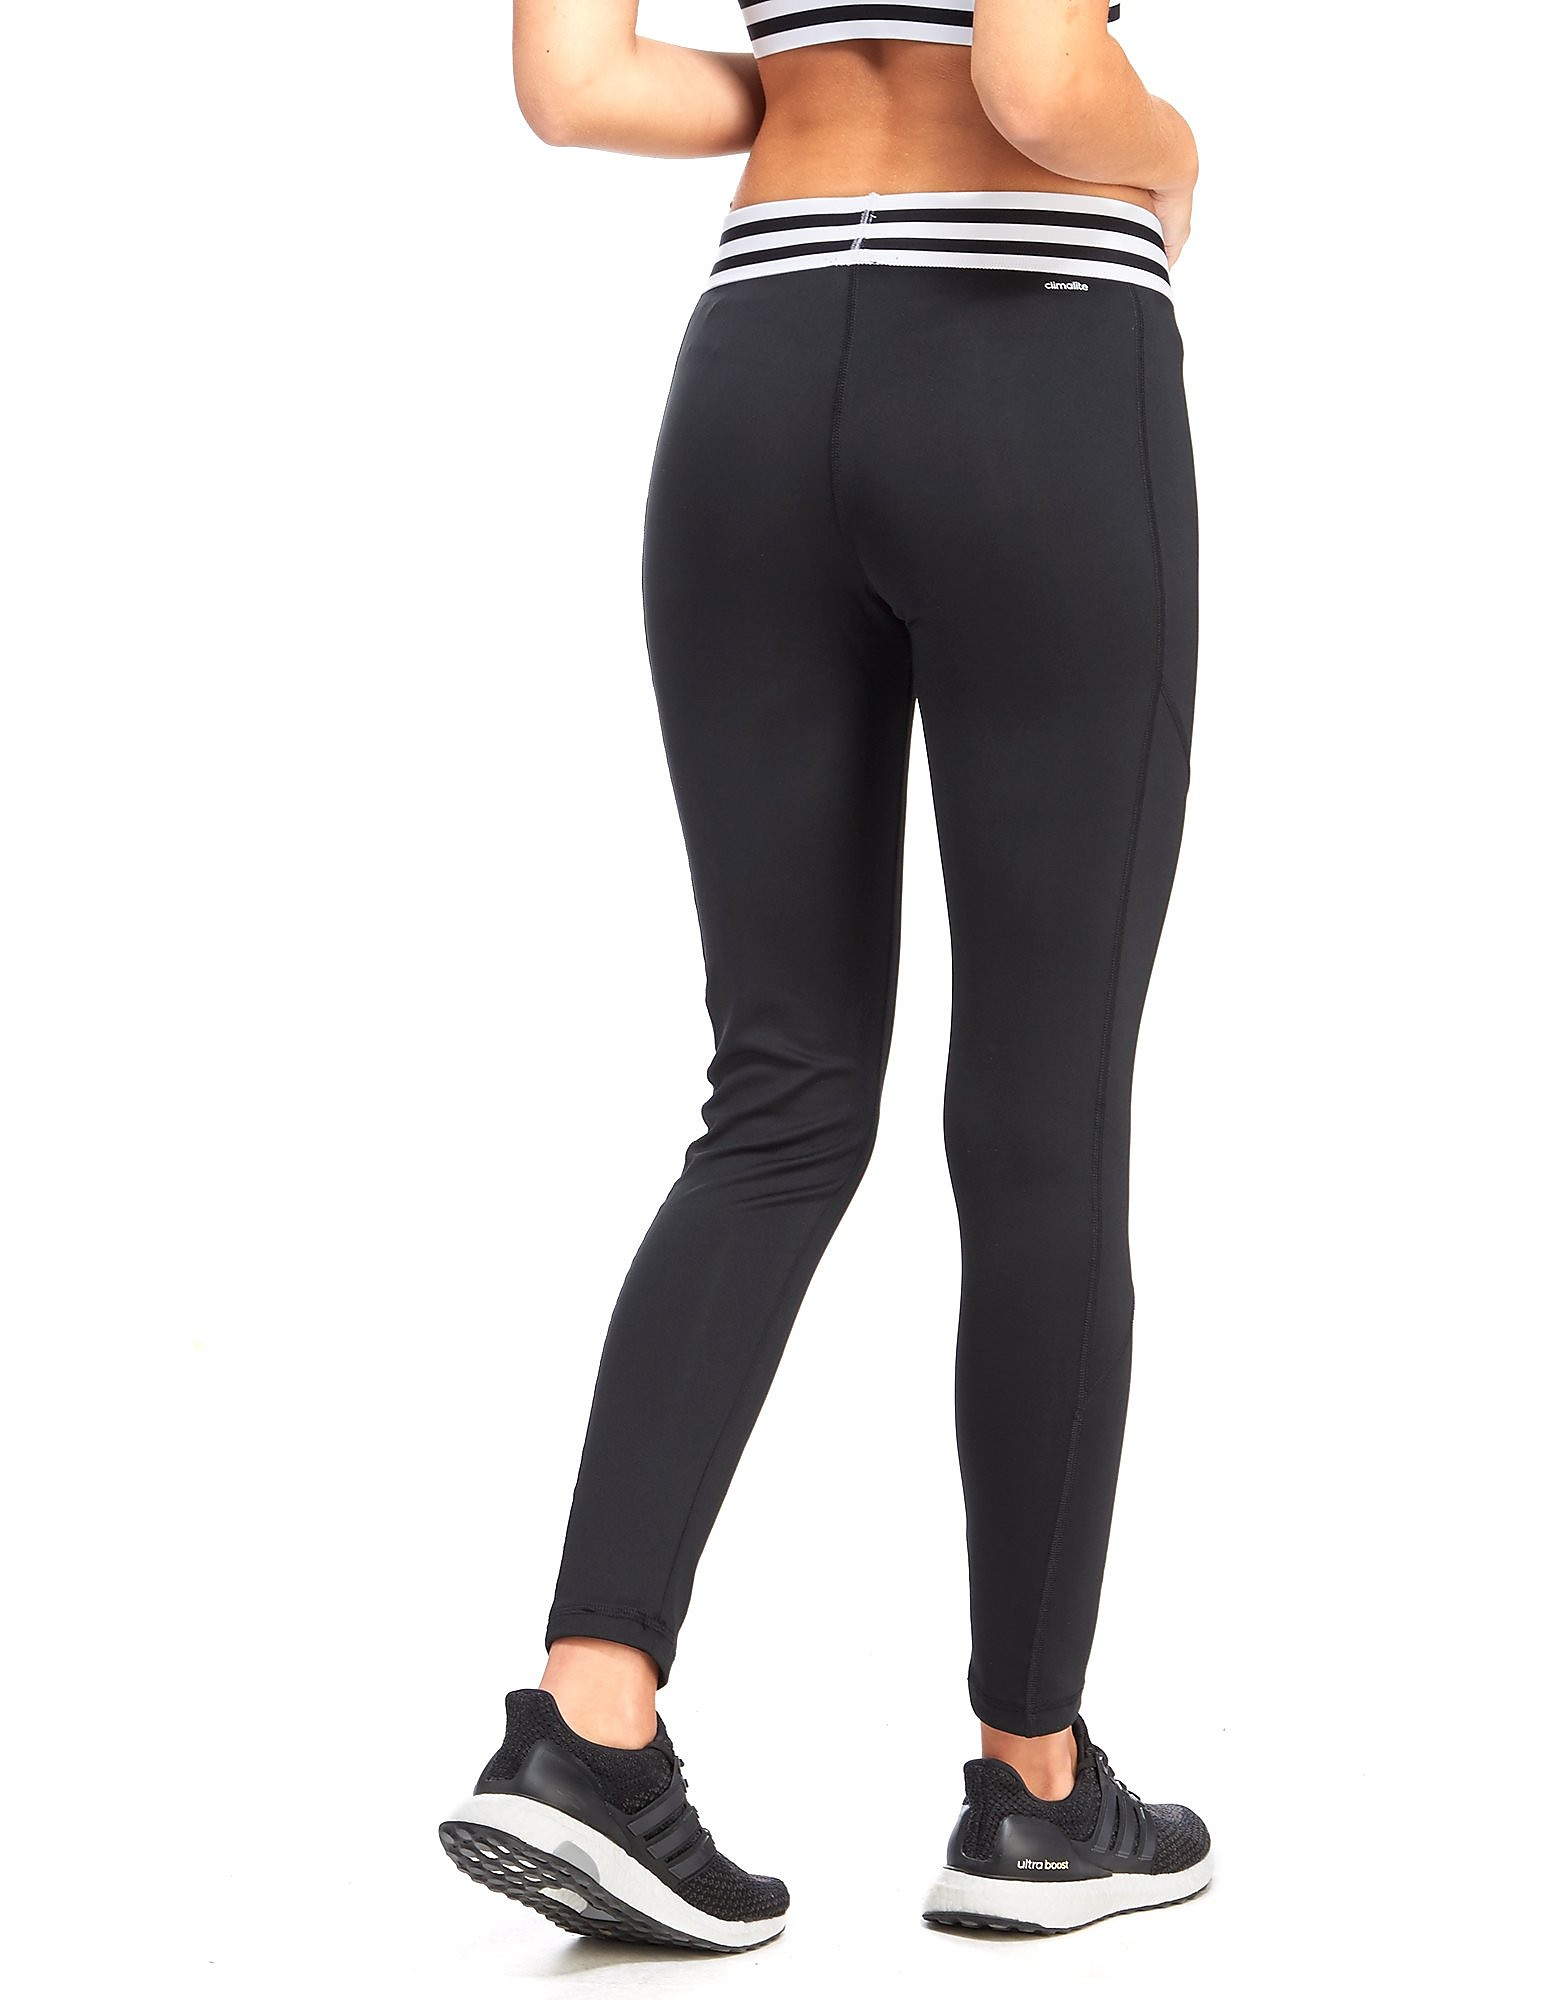 adidas leggings Tape